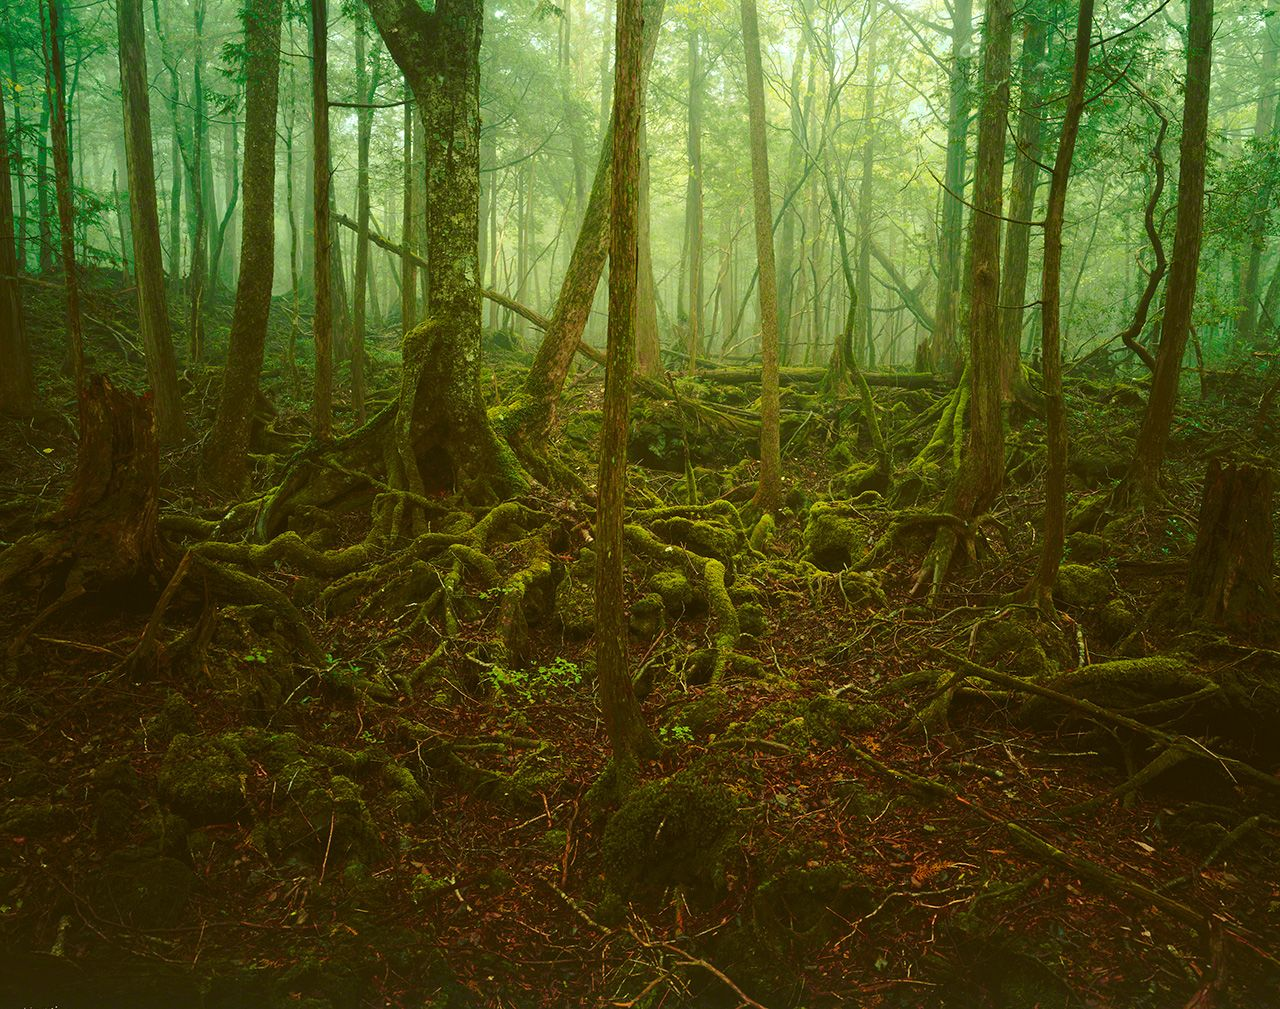 The cool green mist of Aokigahara Forest.